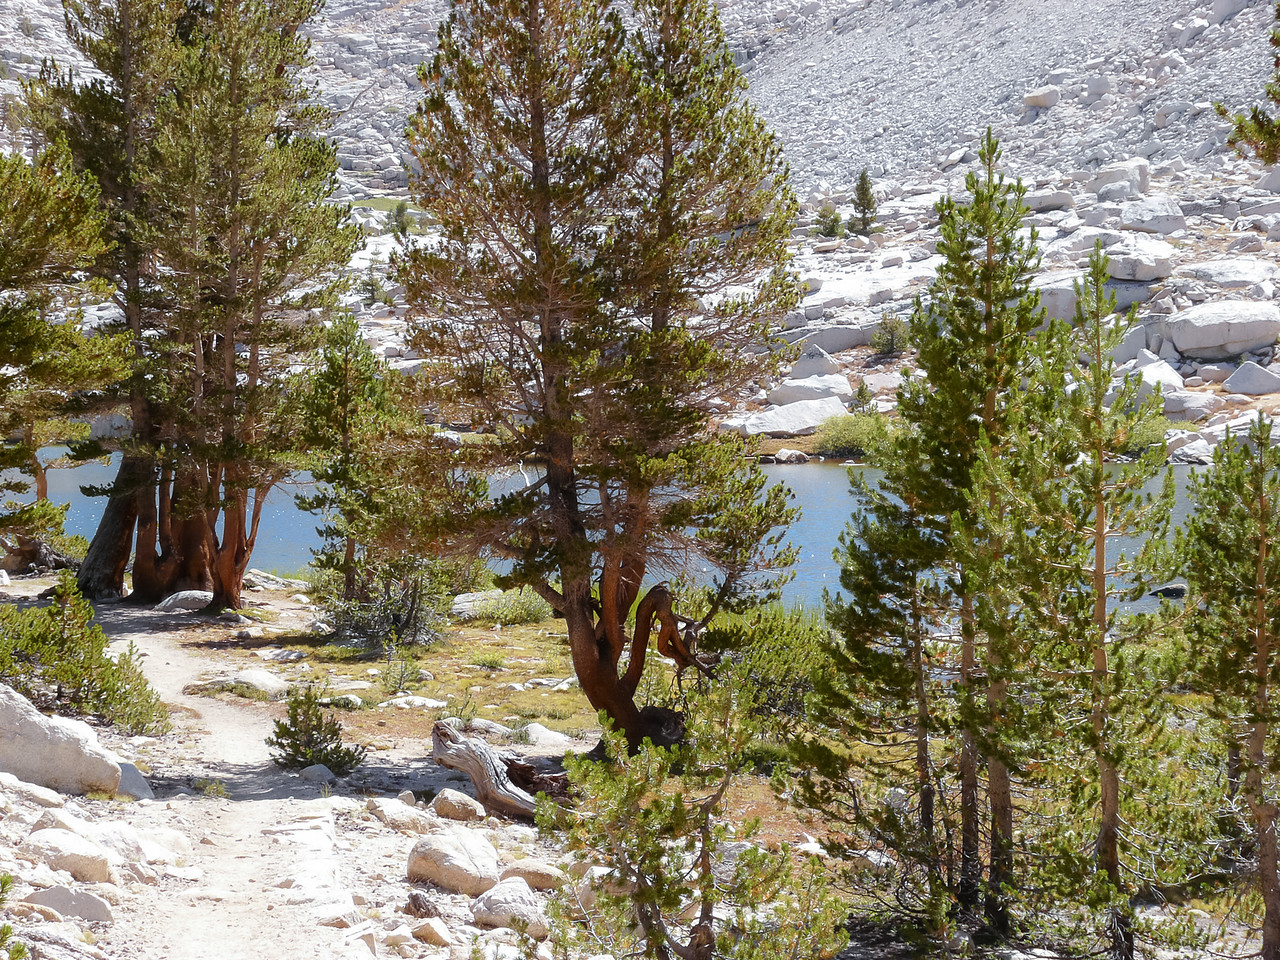 Timberline Lake -- I stopped for about 45 min here.